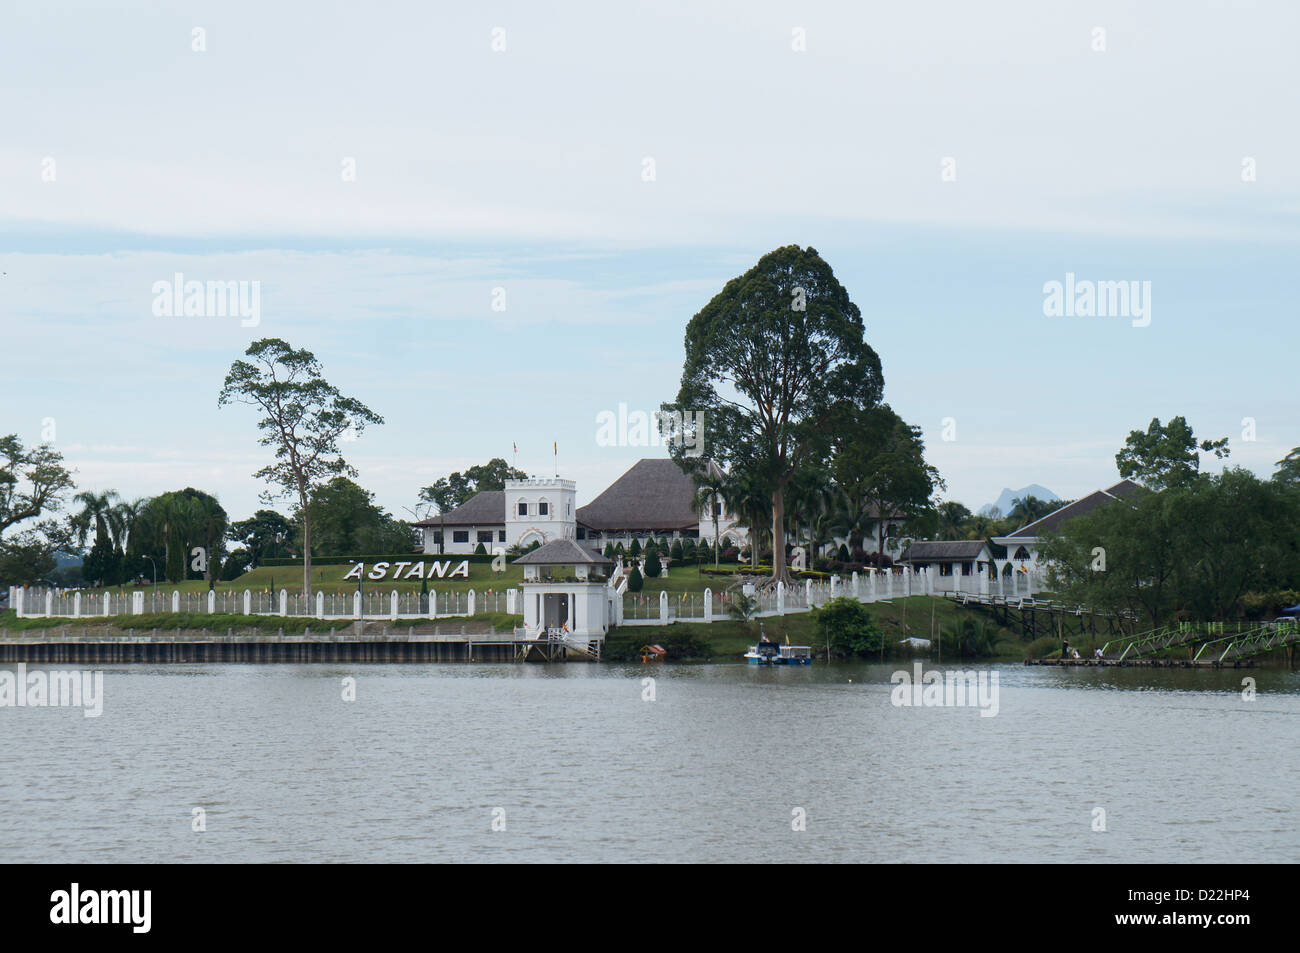 Astana palace in Kuching, Sarawak, opposite Kuching Waterfront, official residence of the Sarawak governor - Stock Image